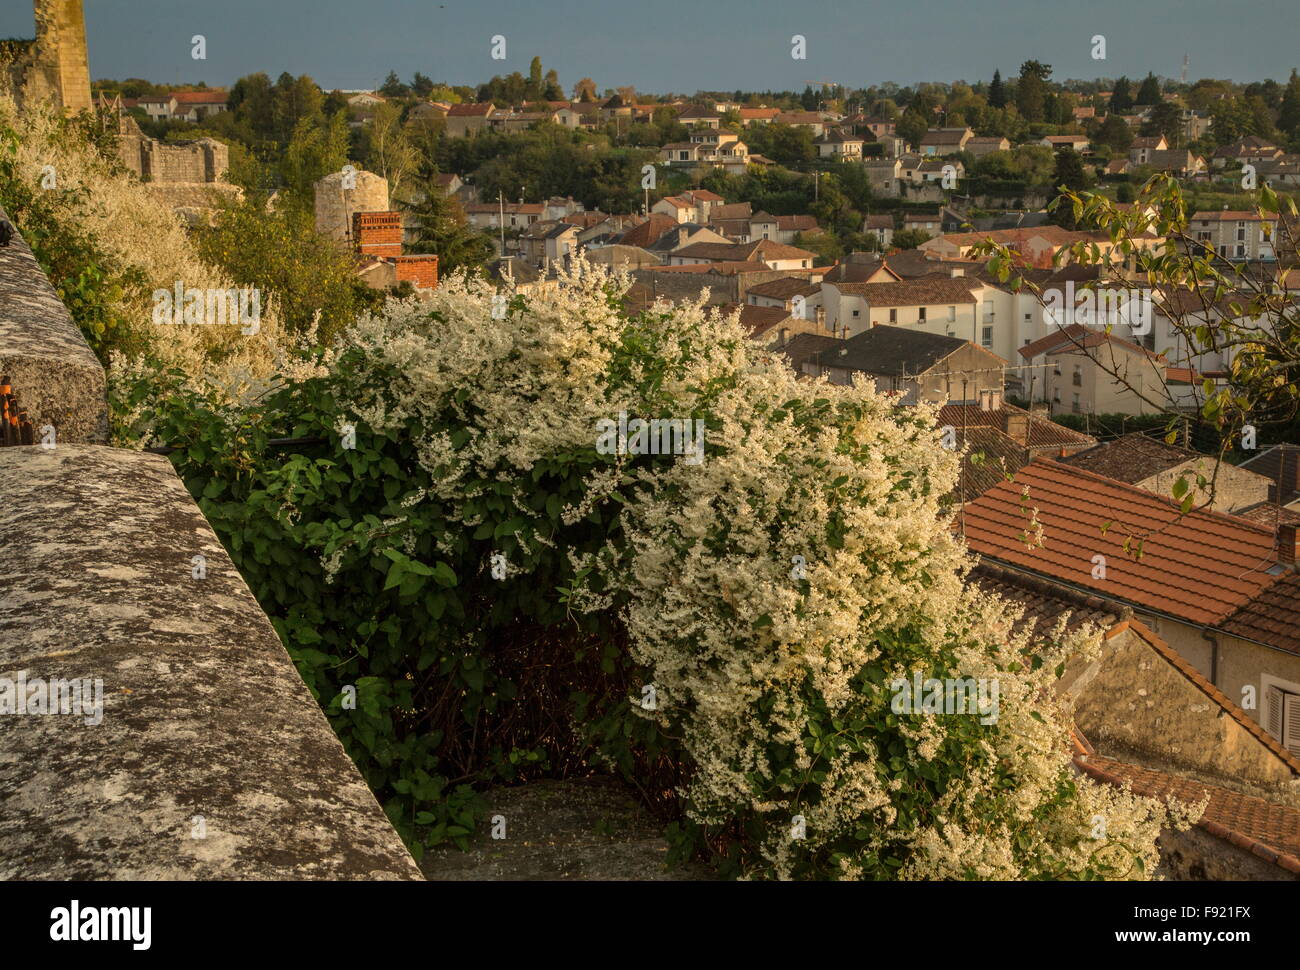 Russian-vine, Fallopia baldschuanica, in full flower at Chauvigny, Vienne, France - Stock Image